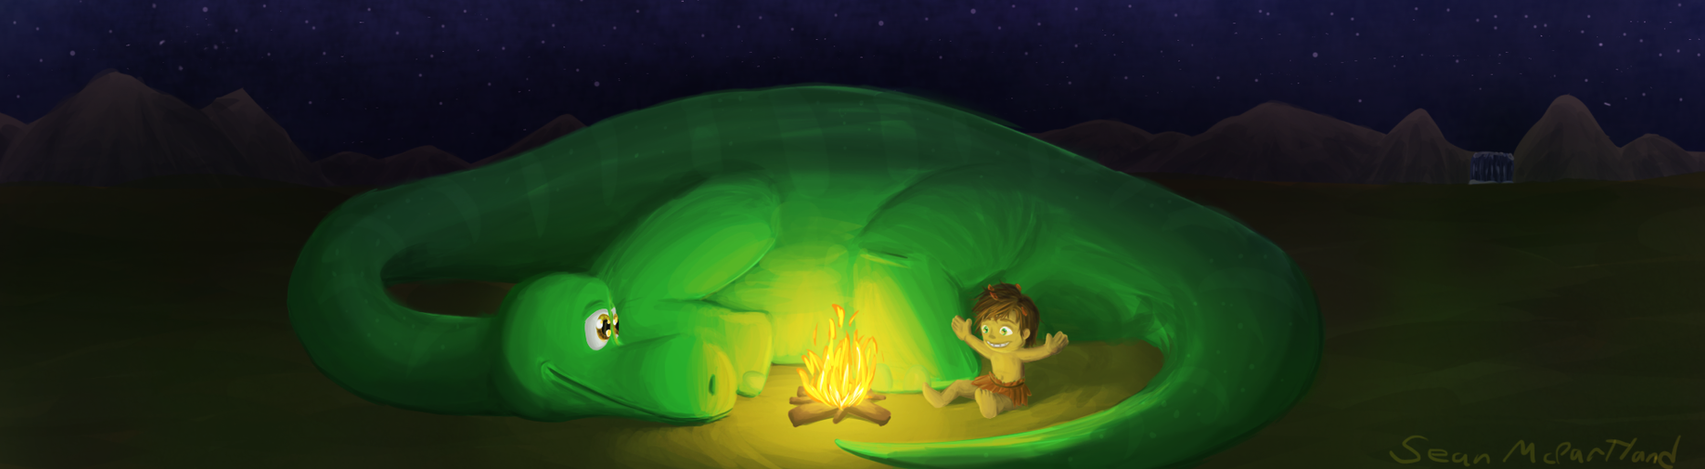 The Good Dinosaur by tipsd9video